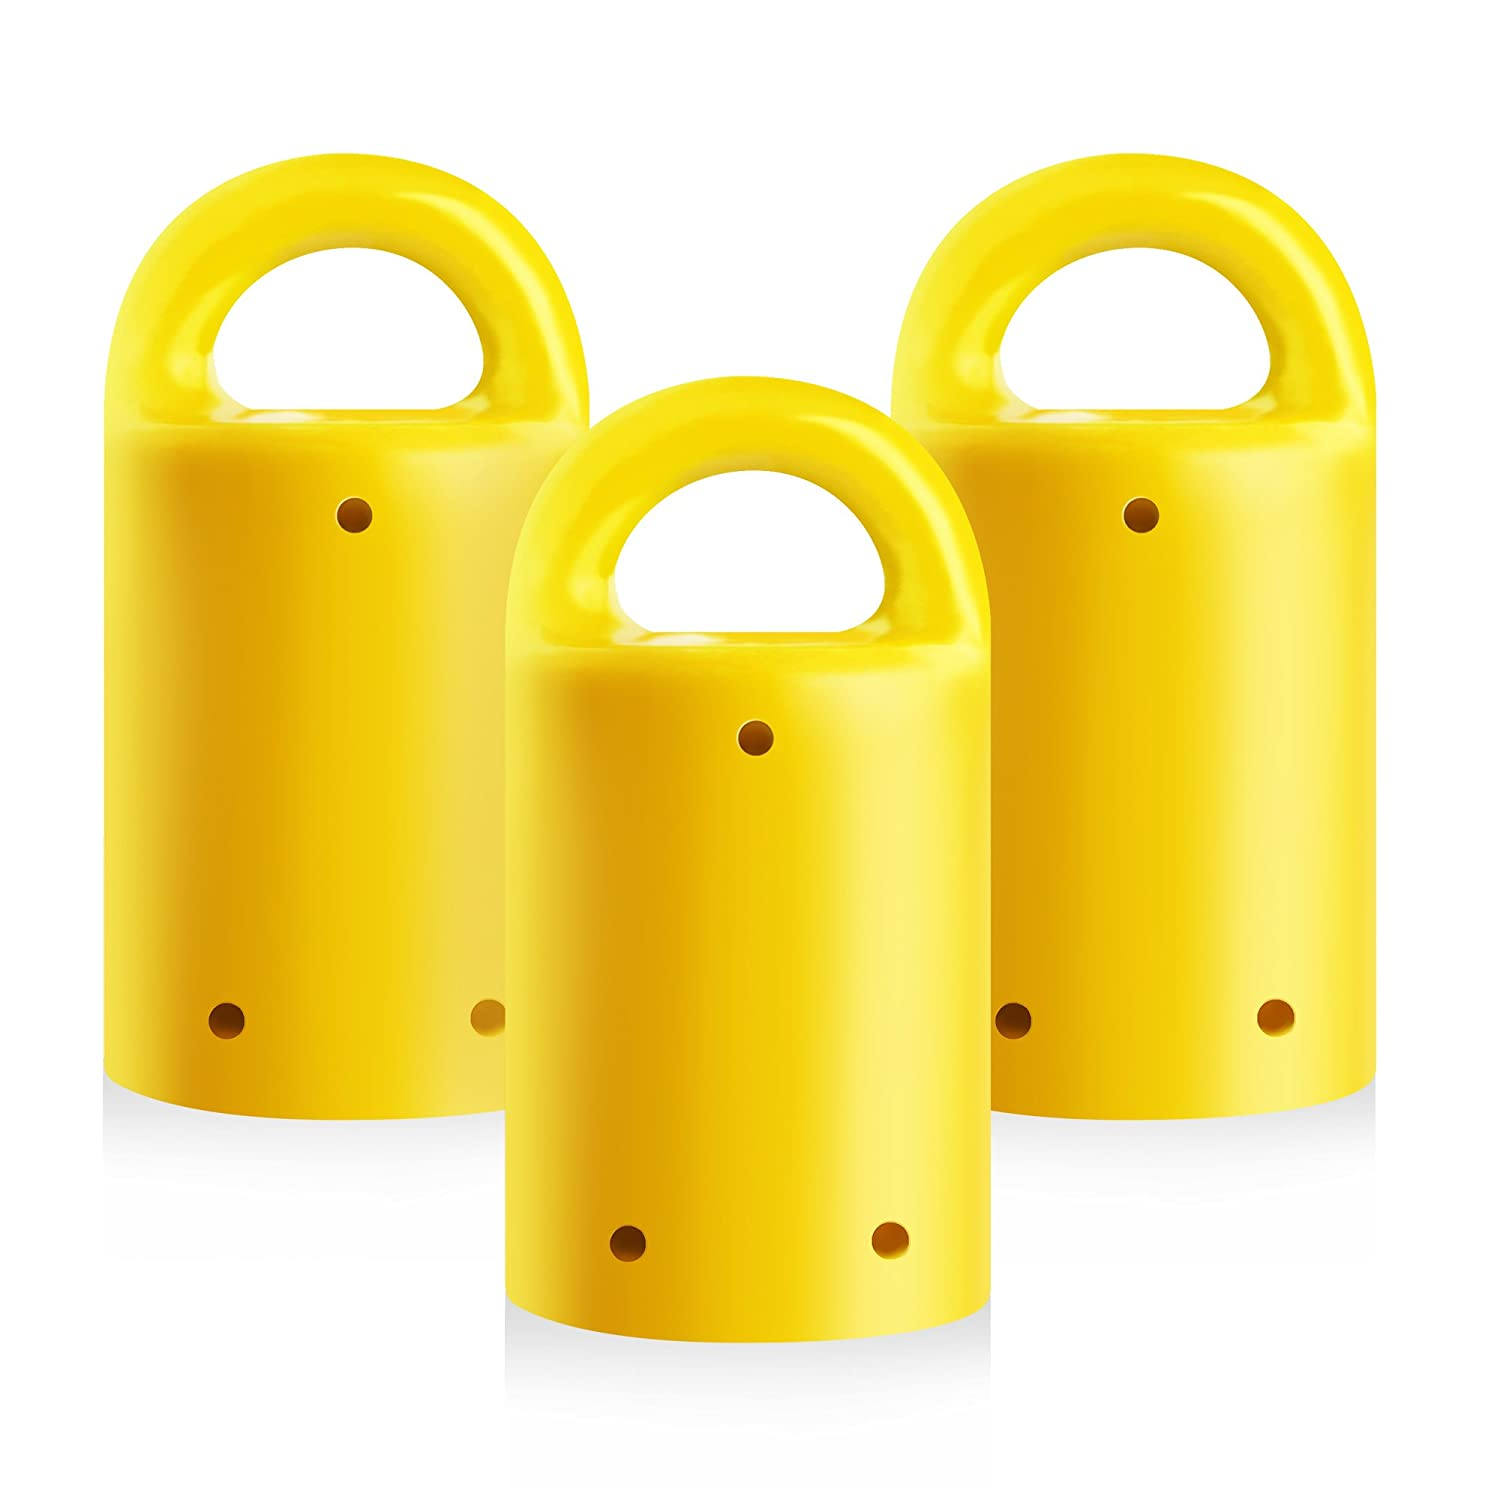 MagnetPal 3 pack Heavy Duty Neodymium Anti Rust Magnet Best for Magnetic Stud Finder Key Organizer Indoor and Outdoor Multi Uses Yellow with Key Ring SP MPM3YL